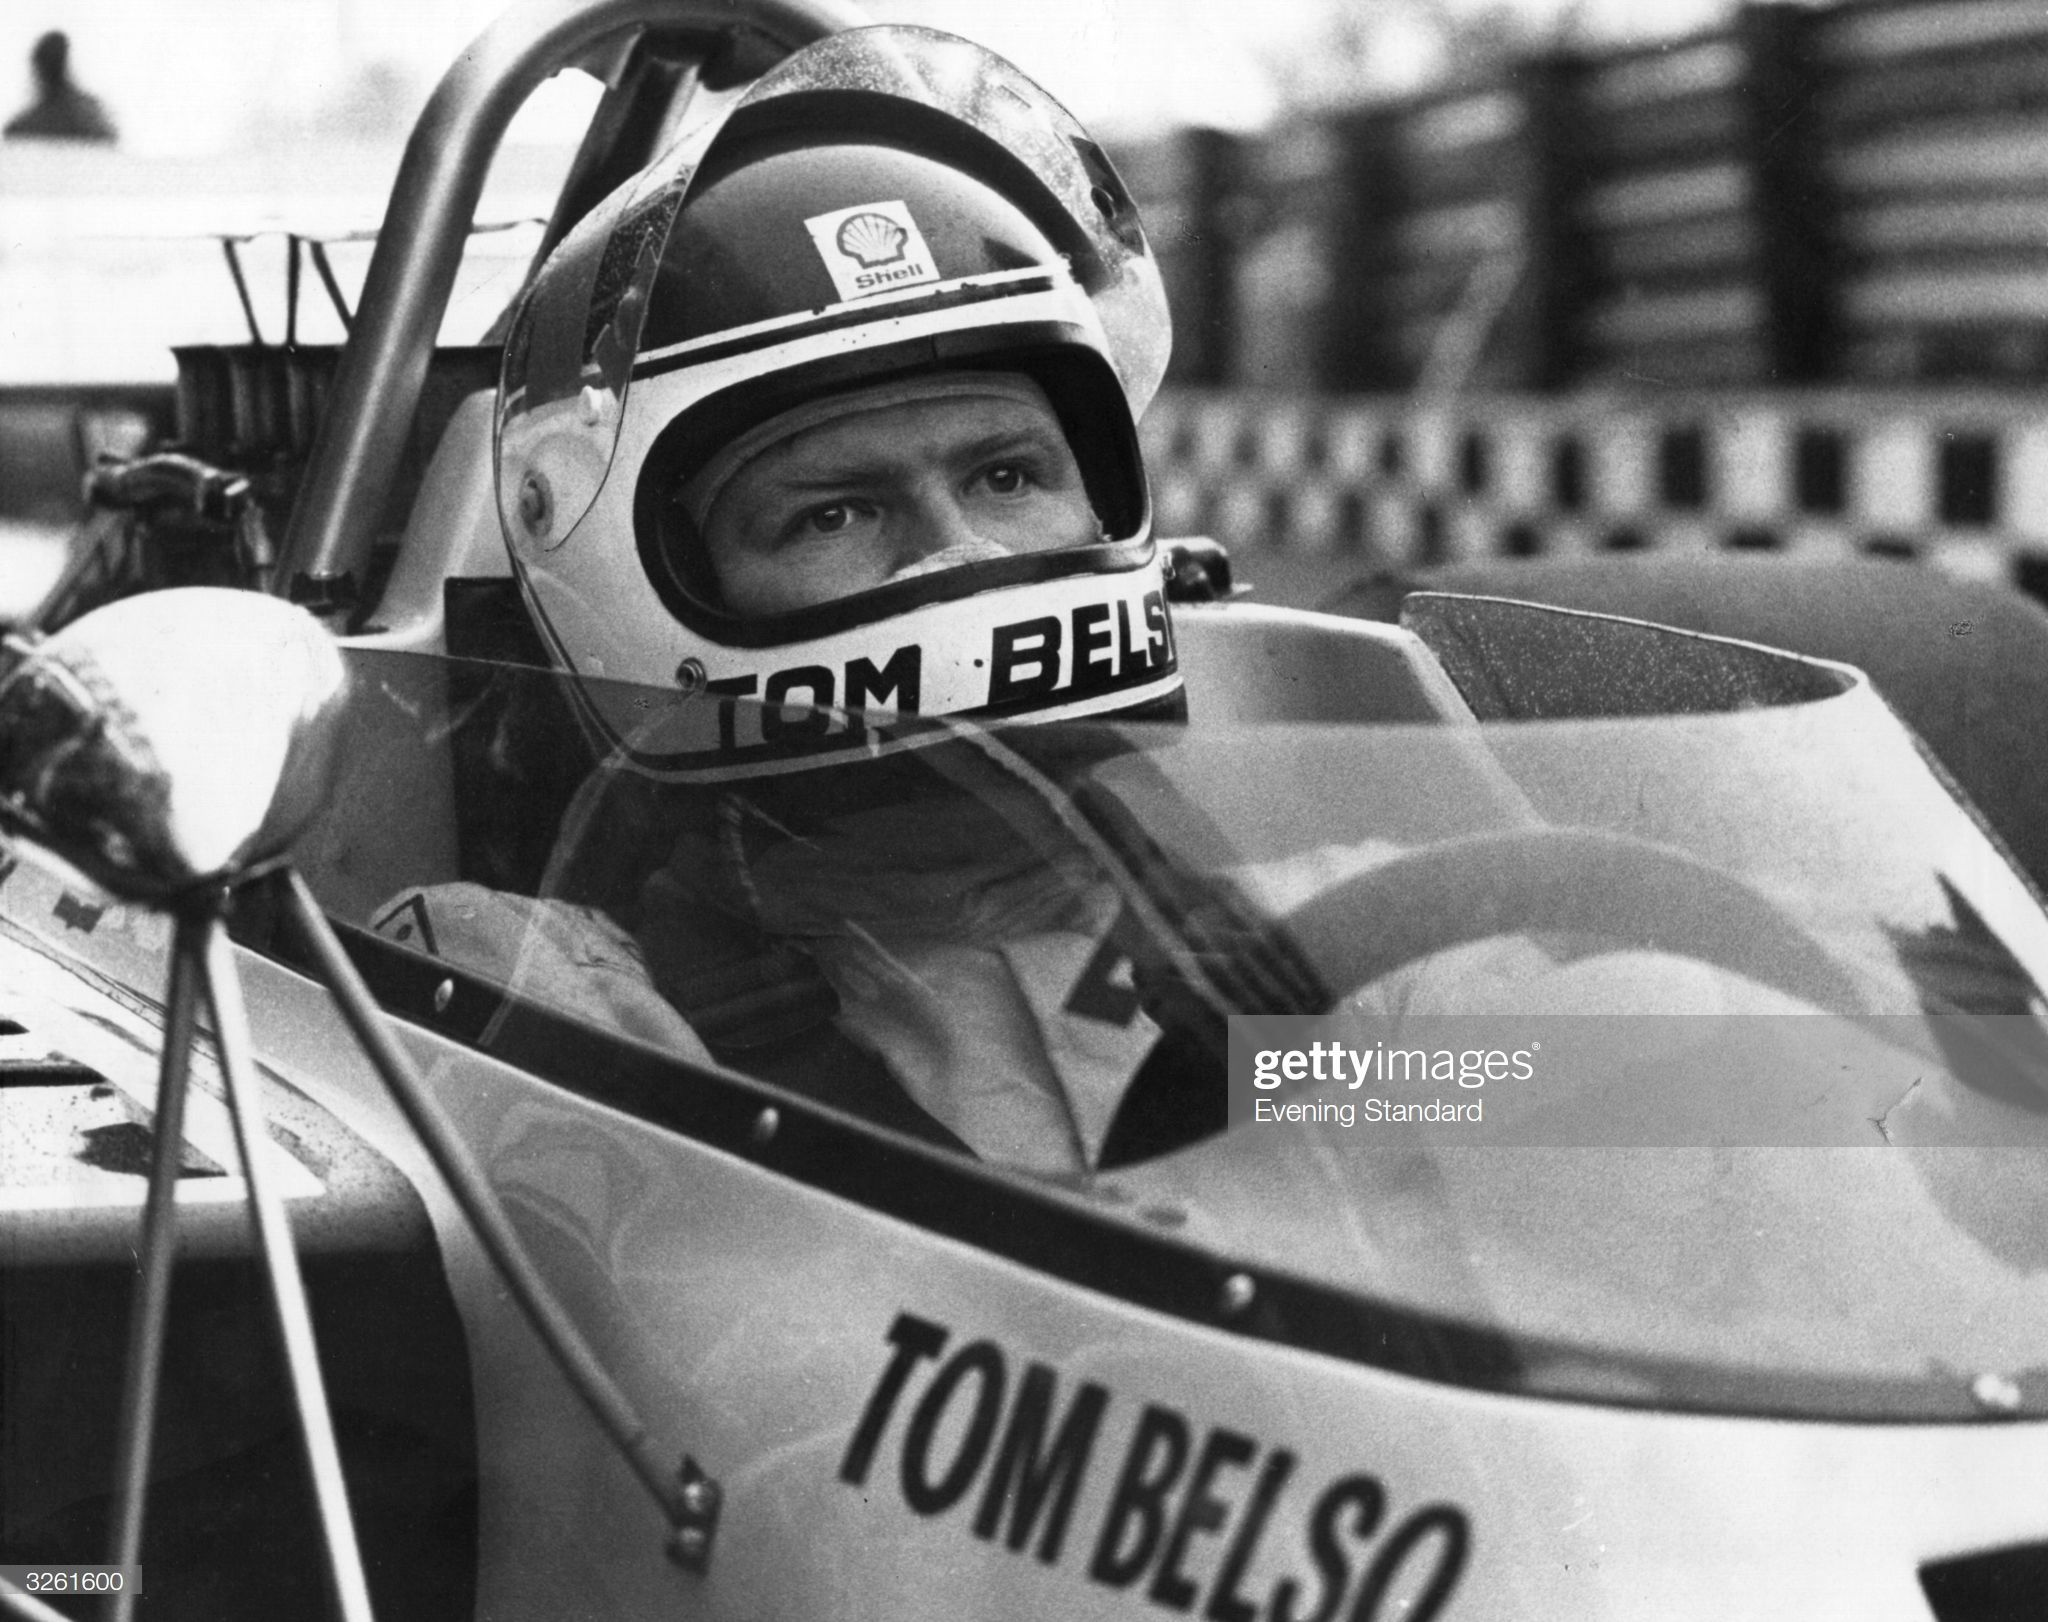 Tom Belso, F1